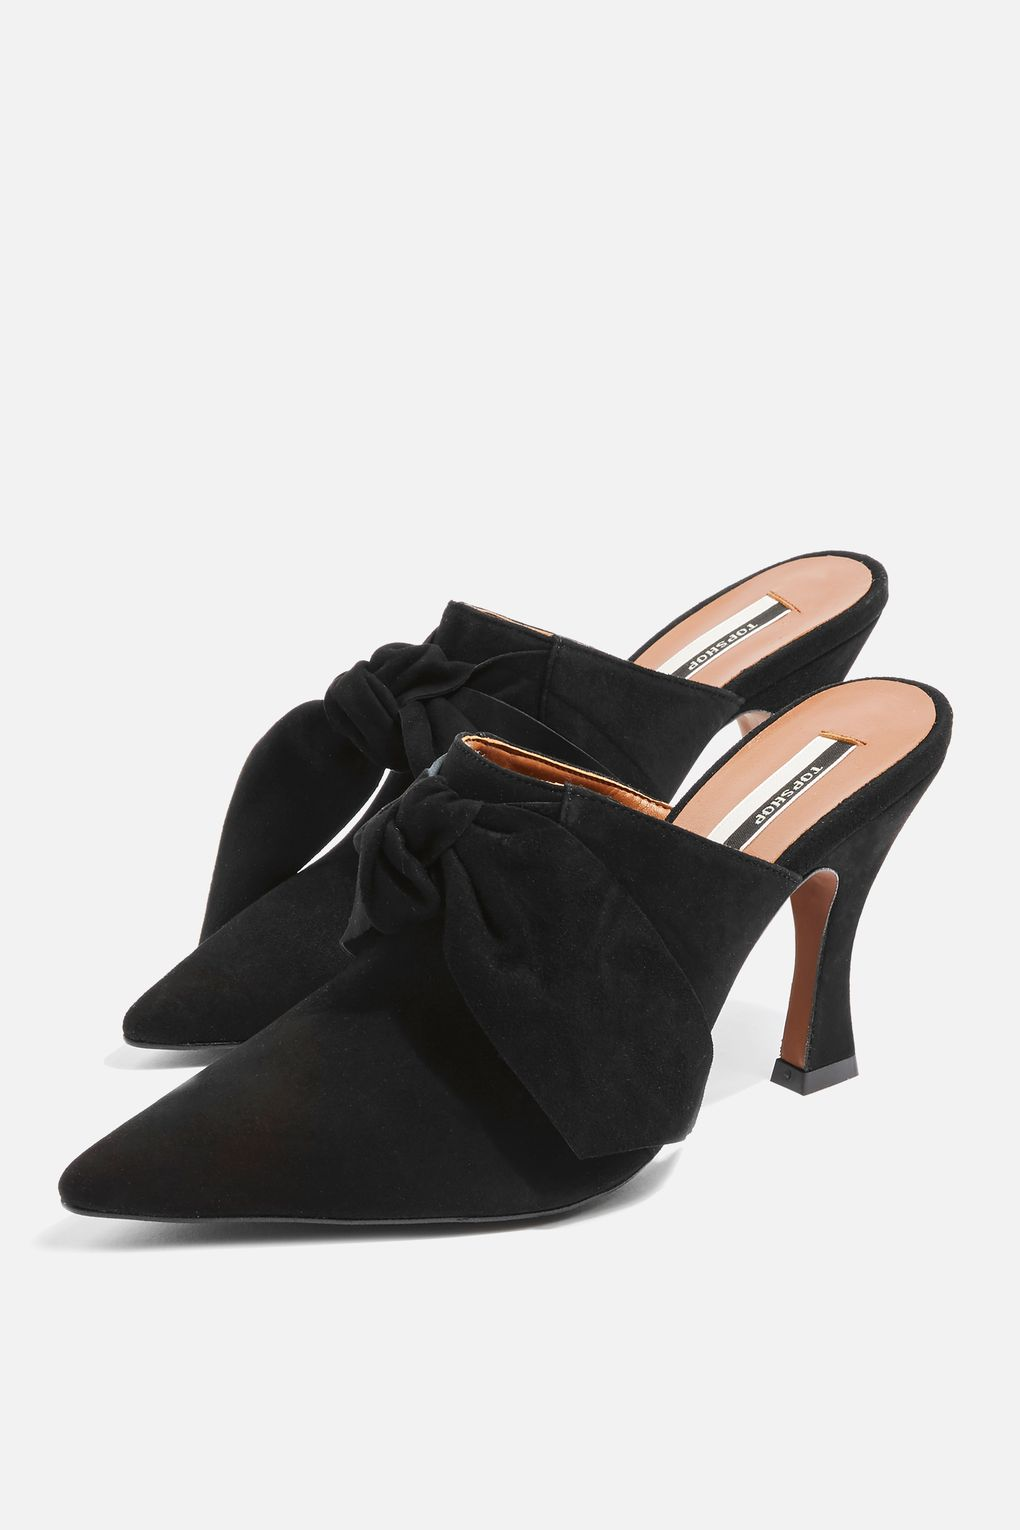 topshop galaxy flare heel mules